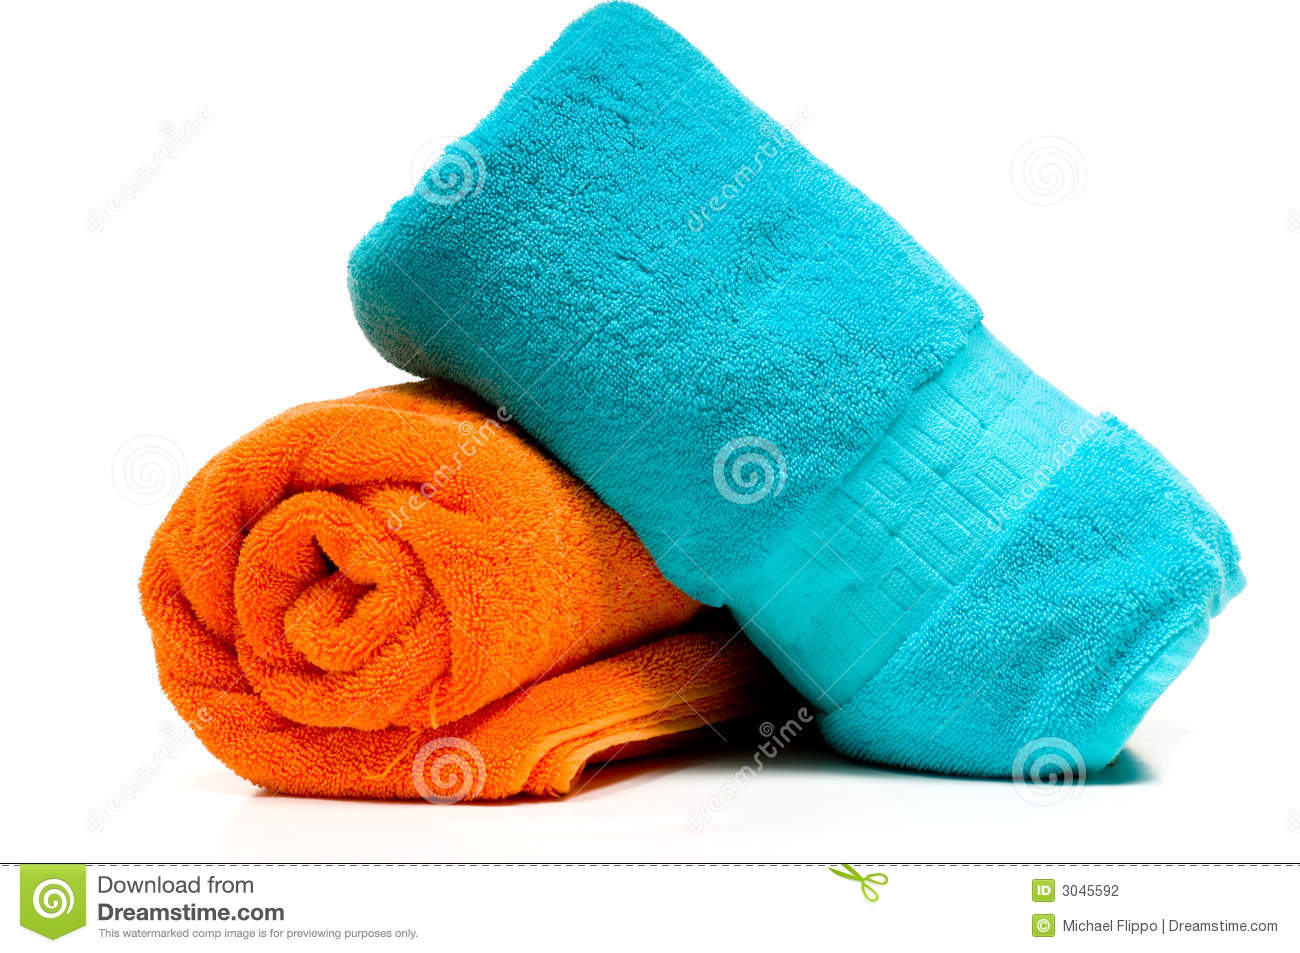 Cloth Towels Fabric Sheet After Laundry Drying Hanging